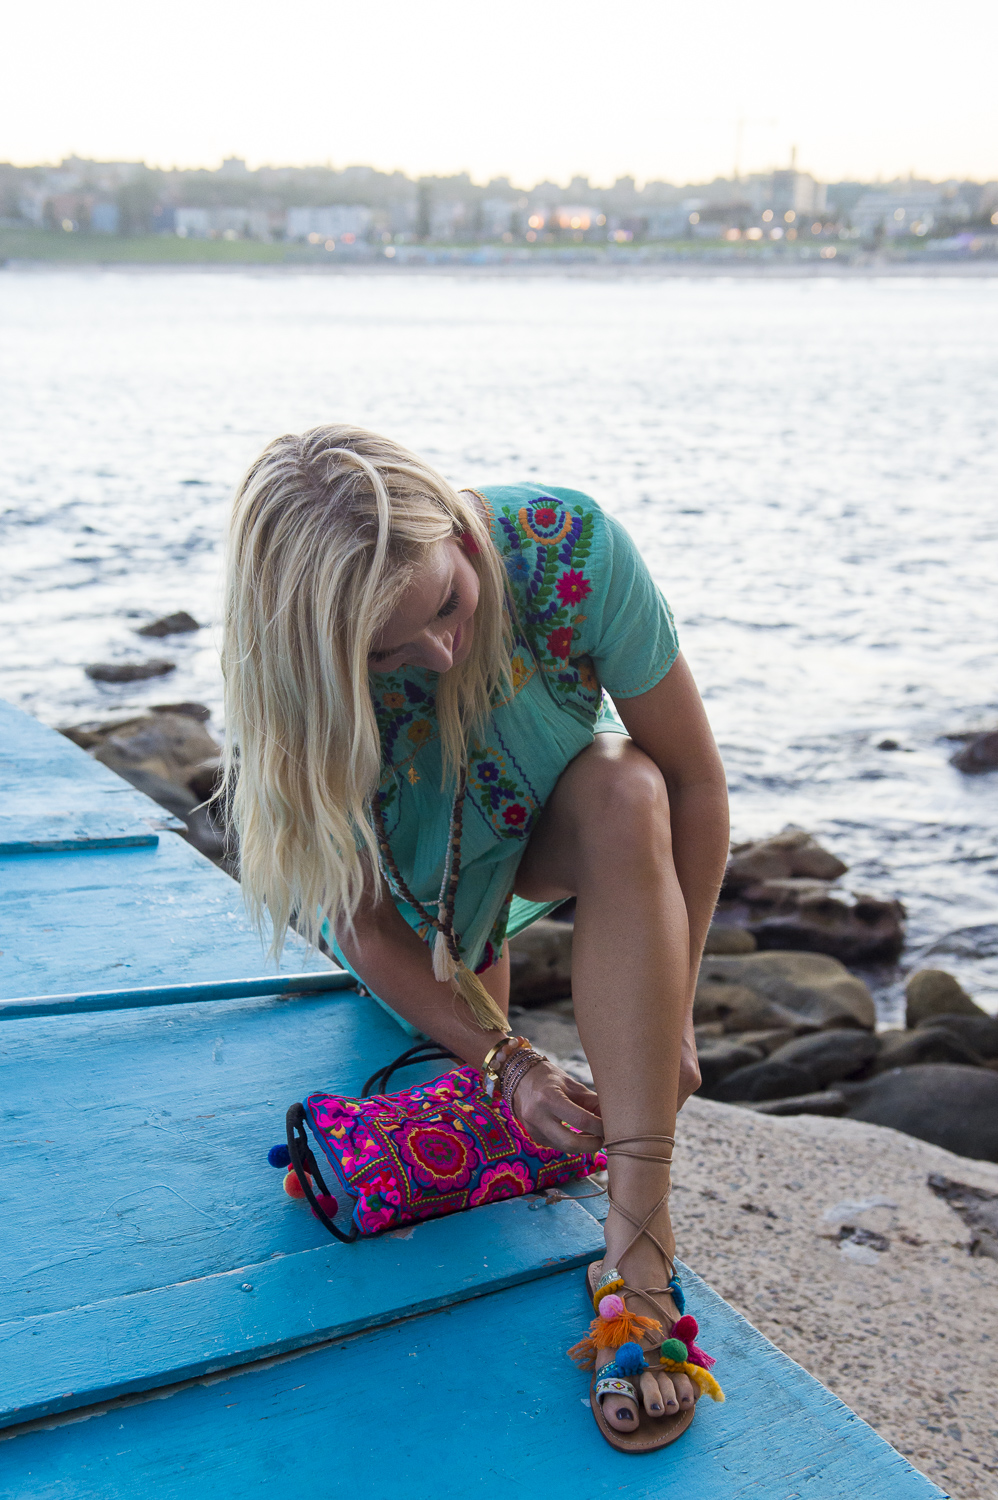 https://www.annakooiman.com/casual-cool/mint-green-gauze-embroidered-dress-yoga-beads-bright-boho-bag-pom-pom-sandals